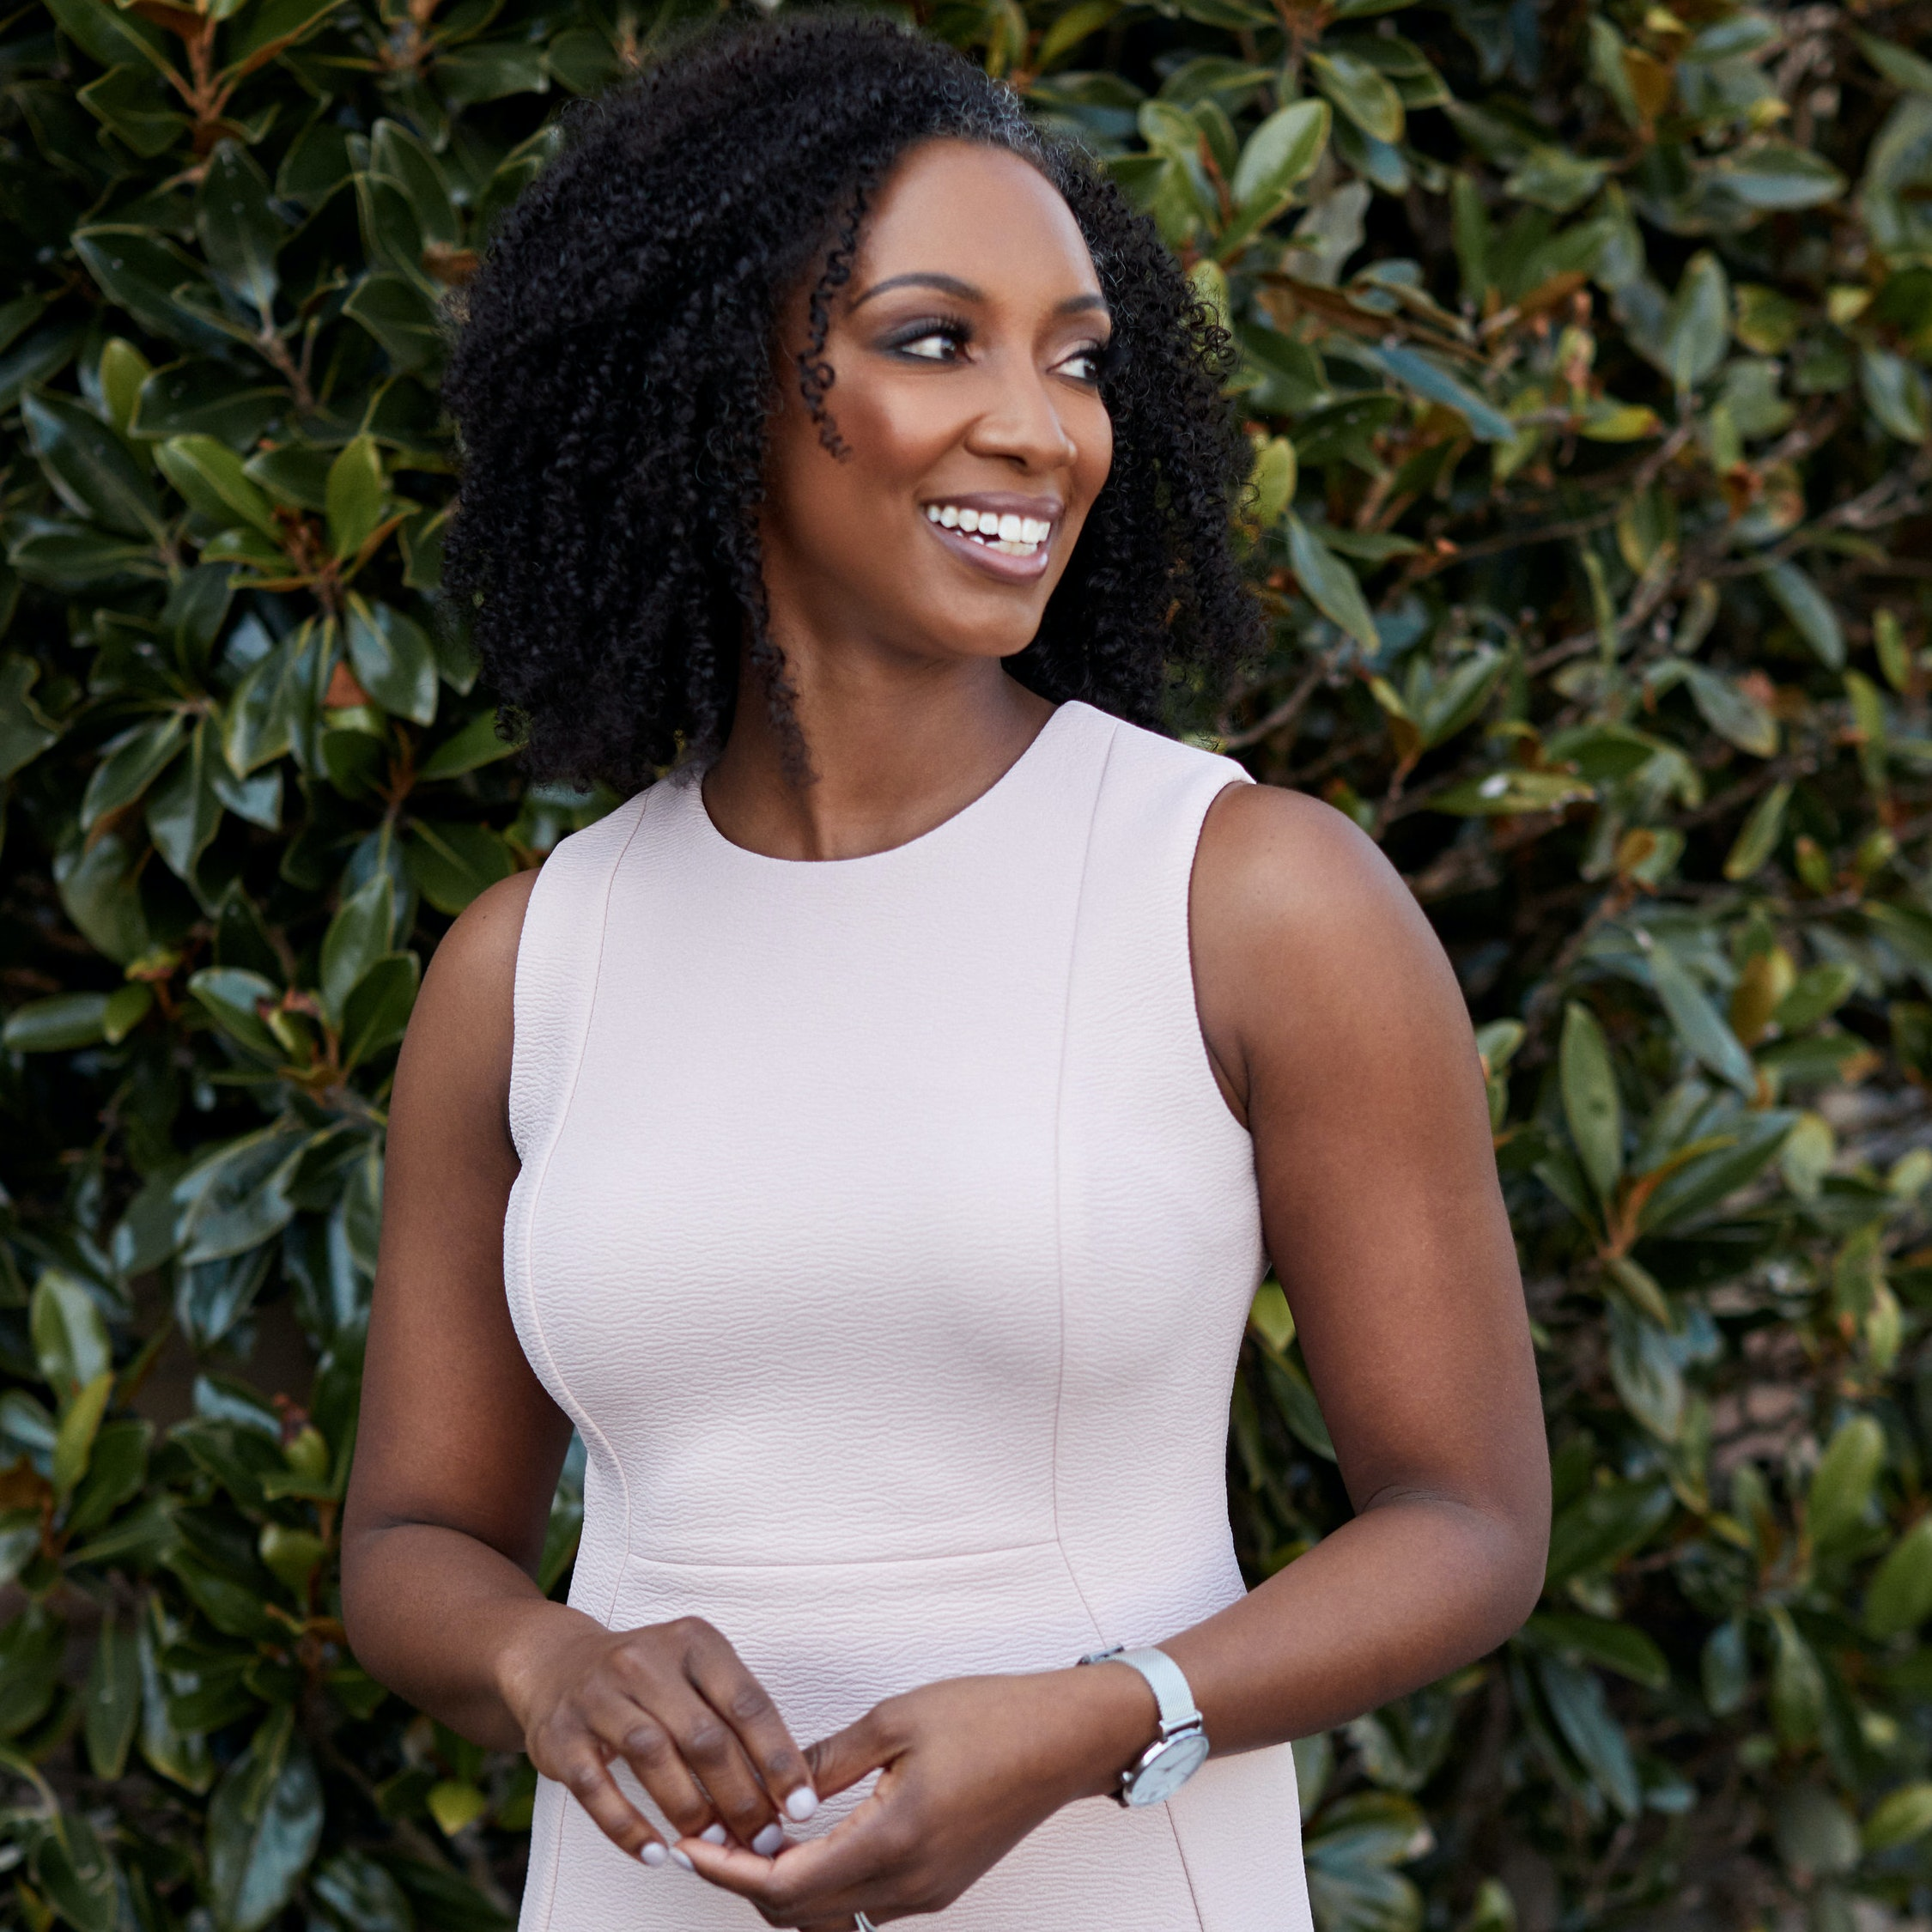 Atlanta Dermatologist Dr. Tiffany Clay on the 1 Thing You Should Be Using on Your Skin